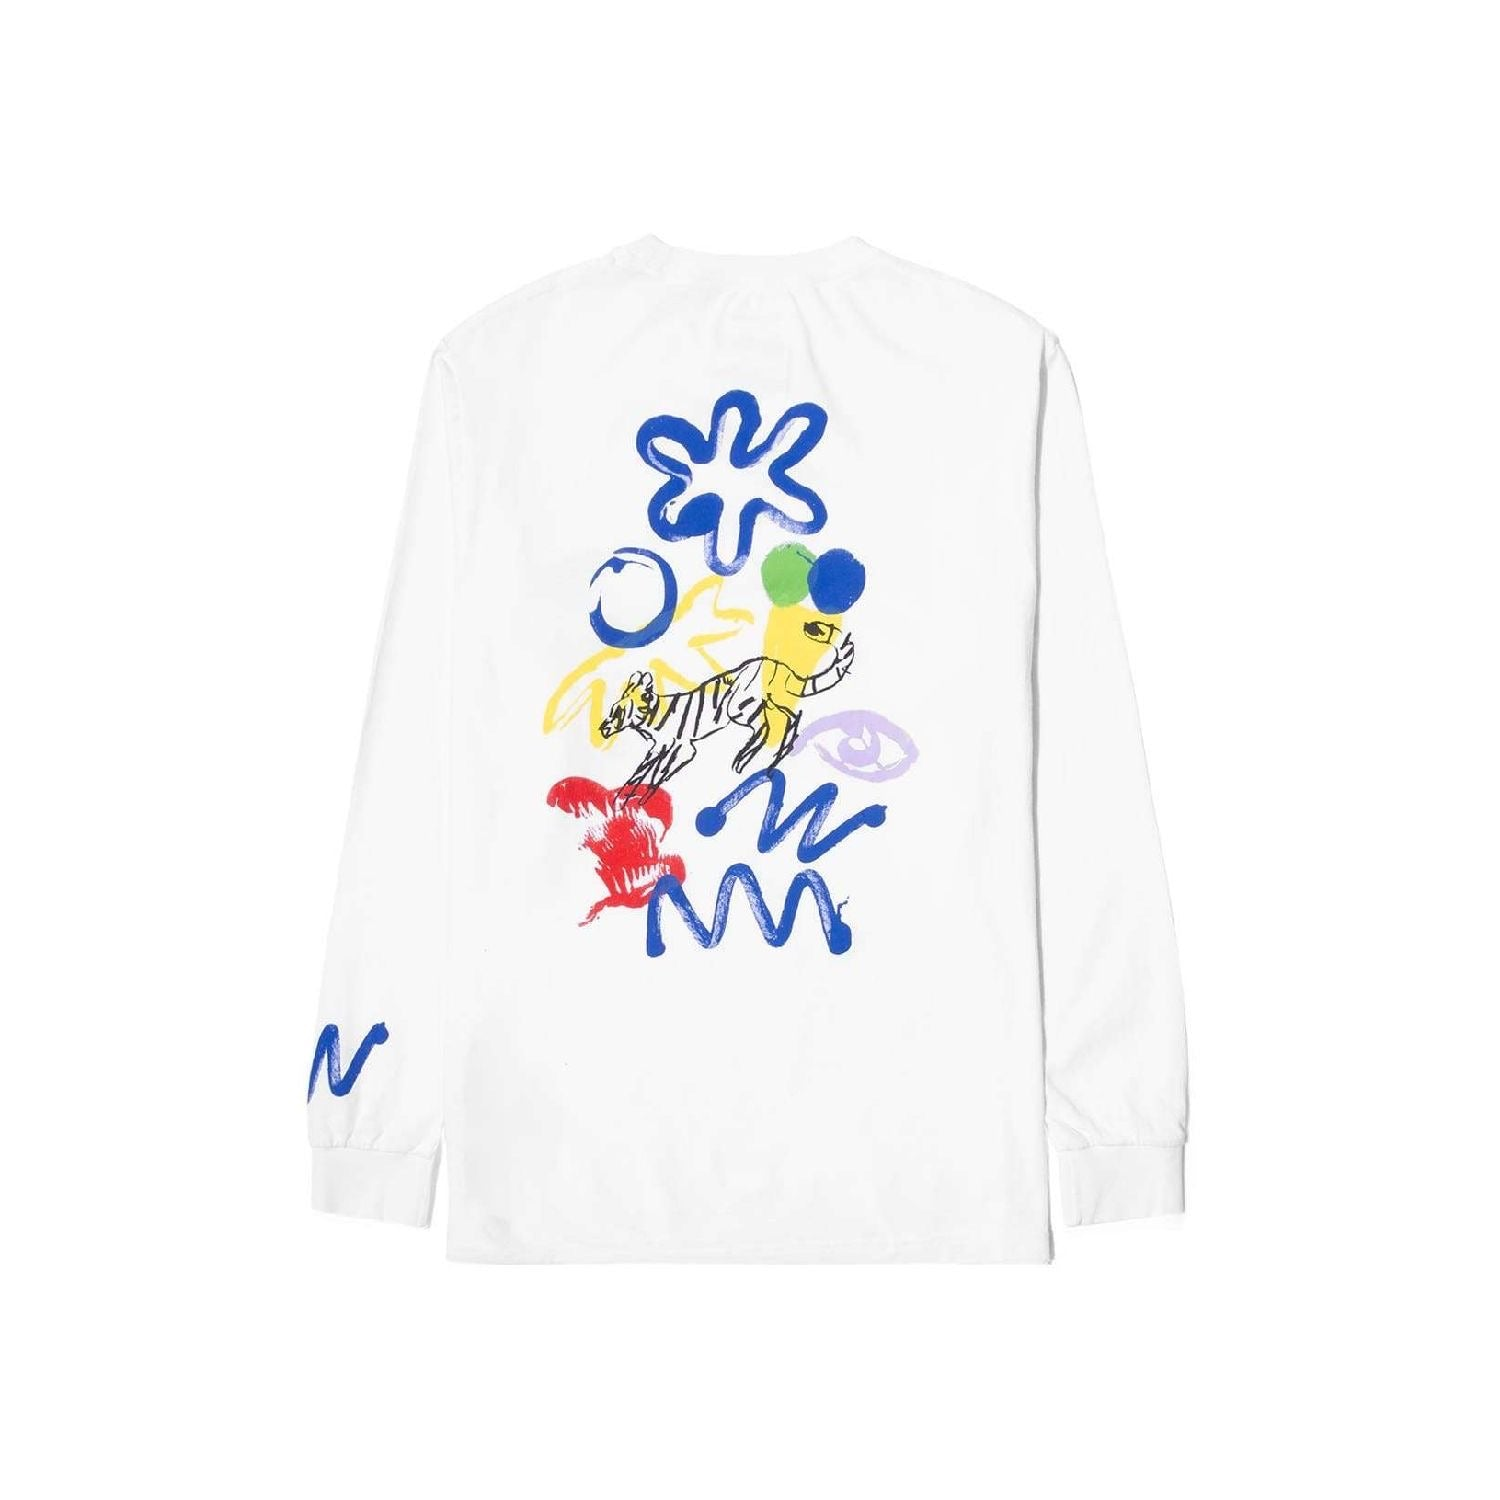 Reception Muderacks L/S T-Shirt - White